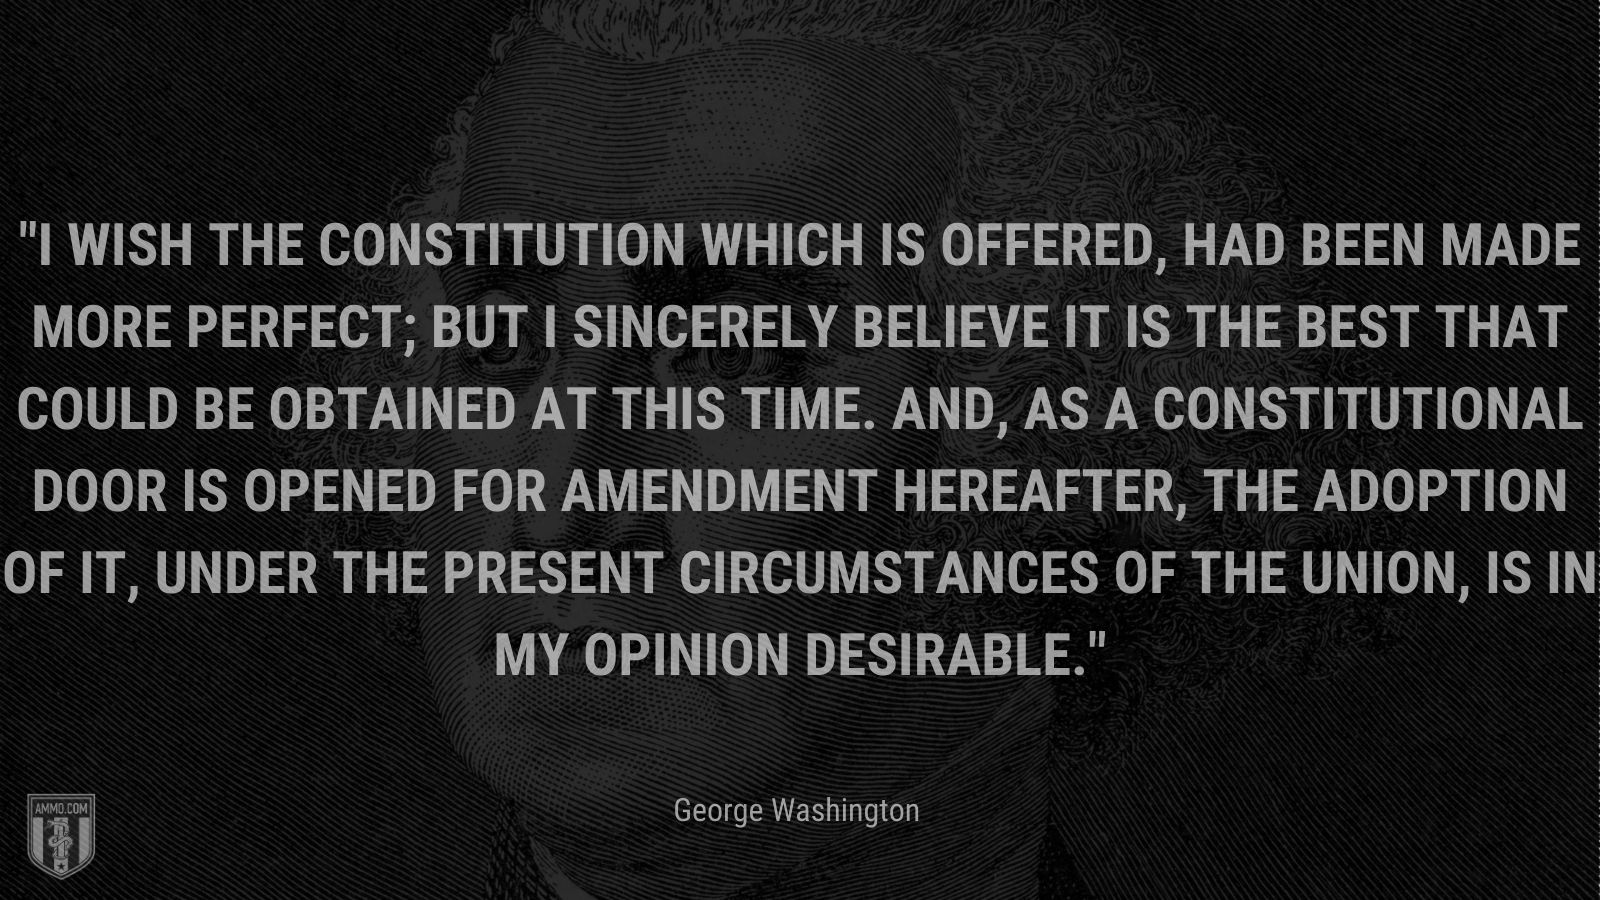 """""""I wish the Constitution which is offered, had been made more perfect; but I sincerely believe it is the best that could be obtained at this time. And, as a constitutional door is opened for amendment hereafter, the adoption of it, under the present circumstances of the Union, is in my opinion desirable."""" - George Washington"""